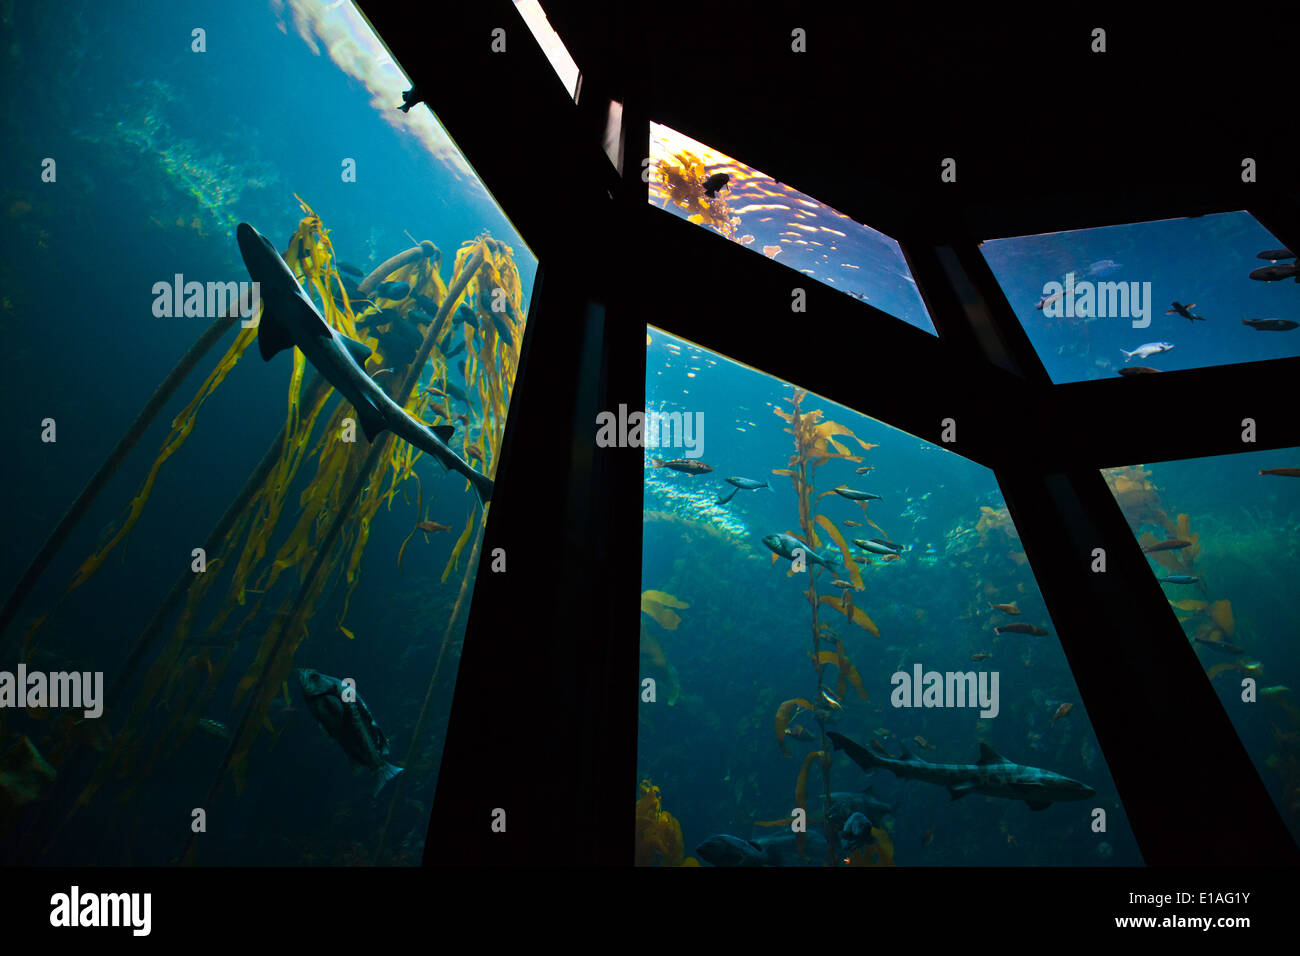 A shark and fish swim in a KELP FOREST in the second largest tank at the MONTEREY BAY AQUARIUM - MONTEREY, CALIFORNIA - Stock Image